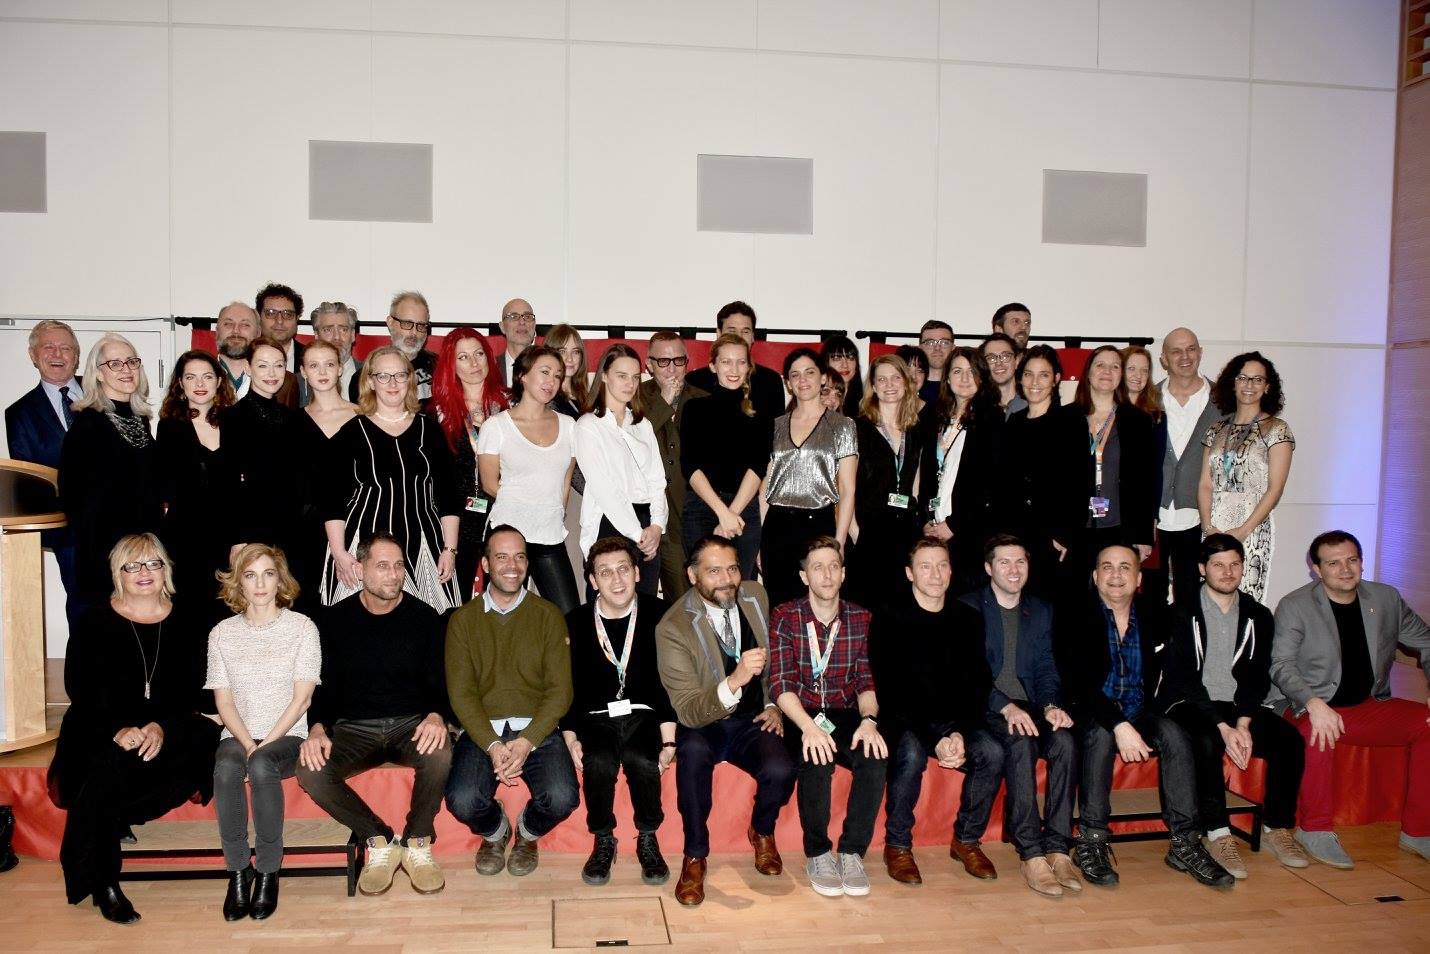 Canadian filmmakers at Berlinale 2016. Looking forward to seeing many of these faces again for 2017 festival and EFM.